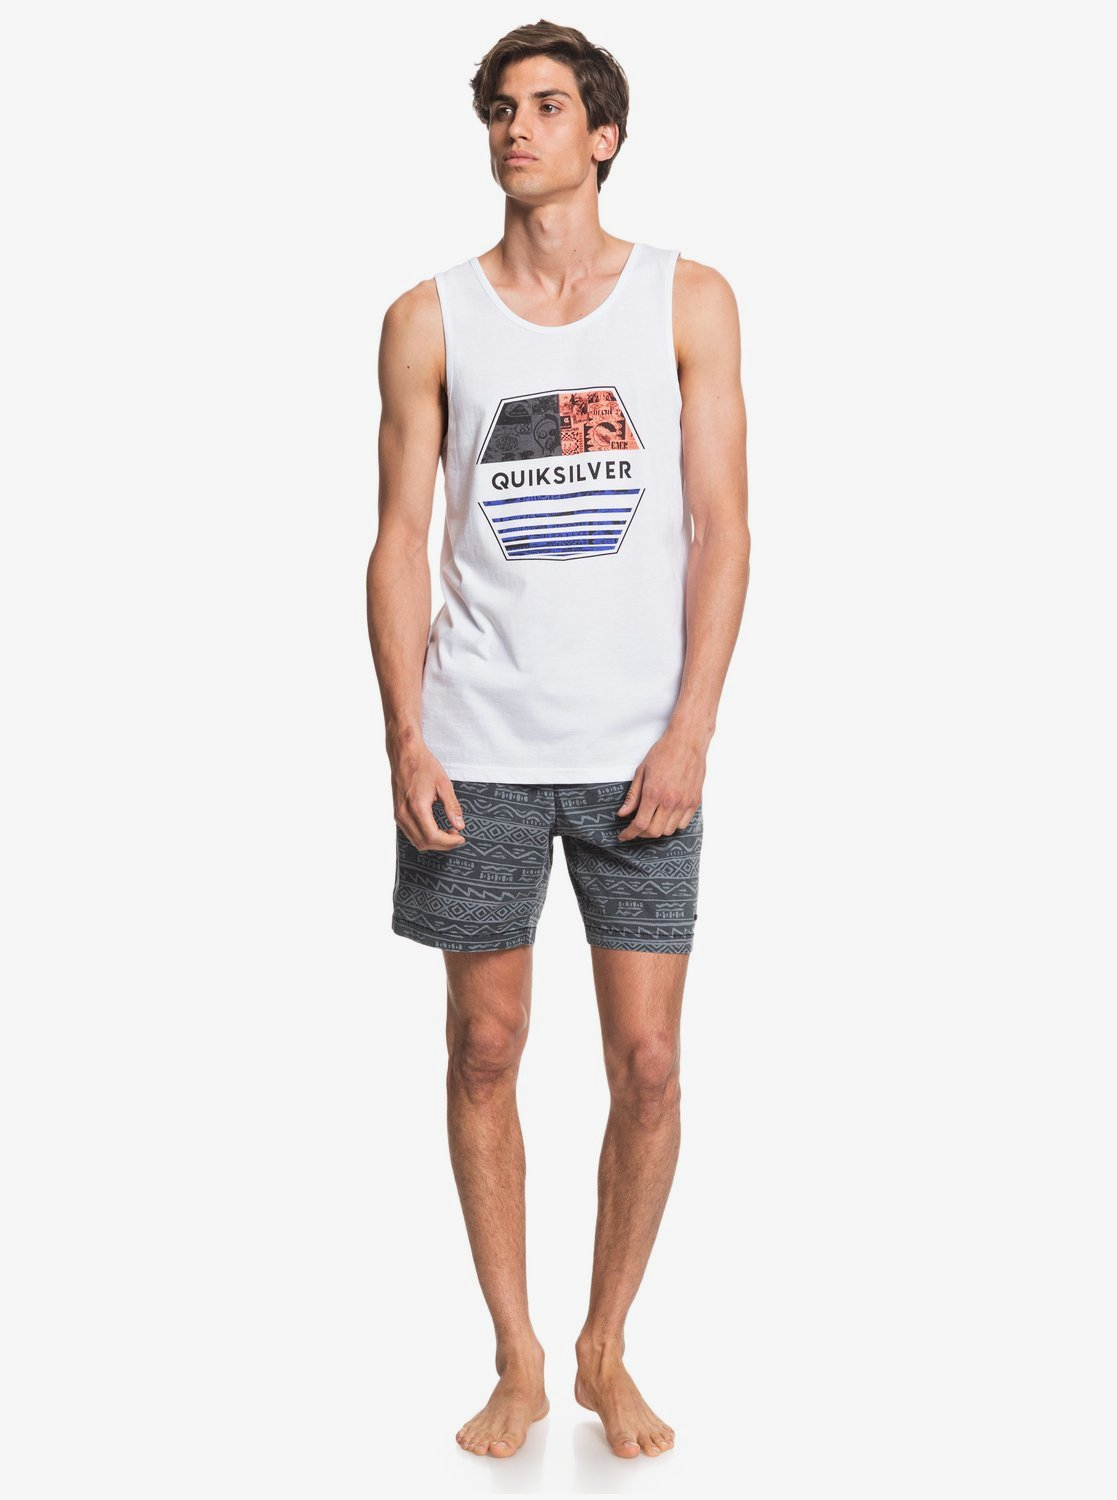 Майка мужская QUIKSILVER DRIFT AWAY White. Фото N3